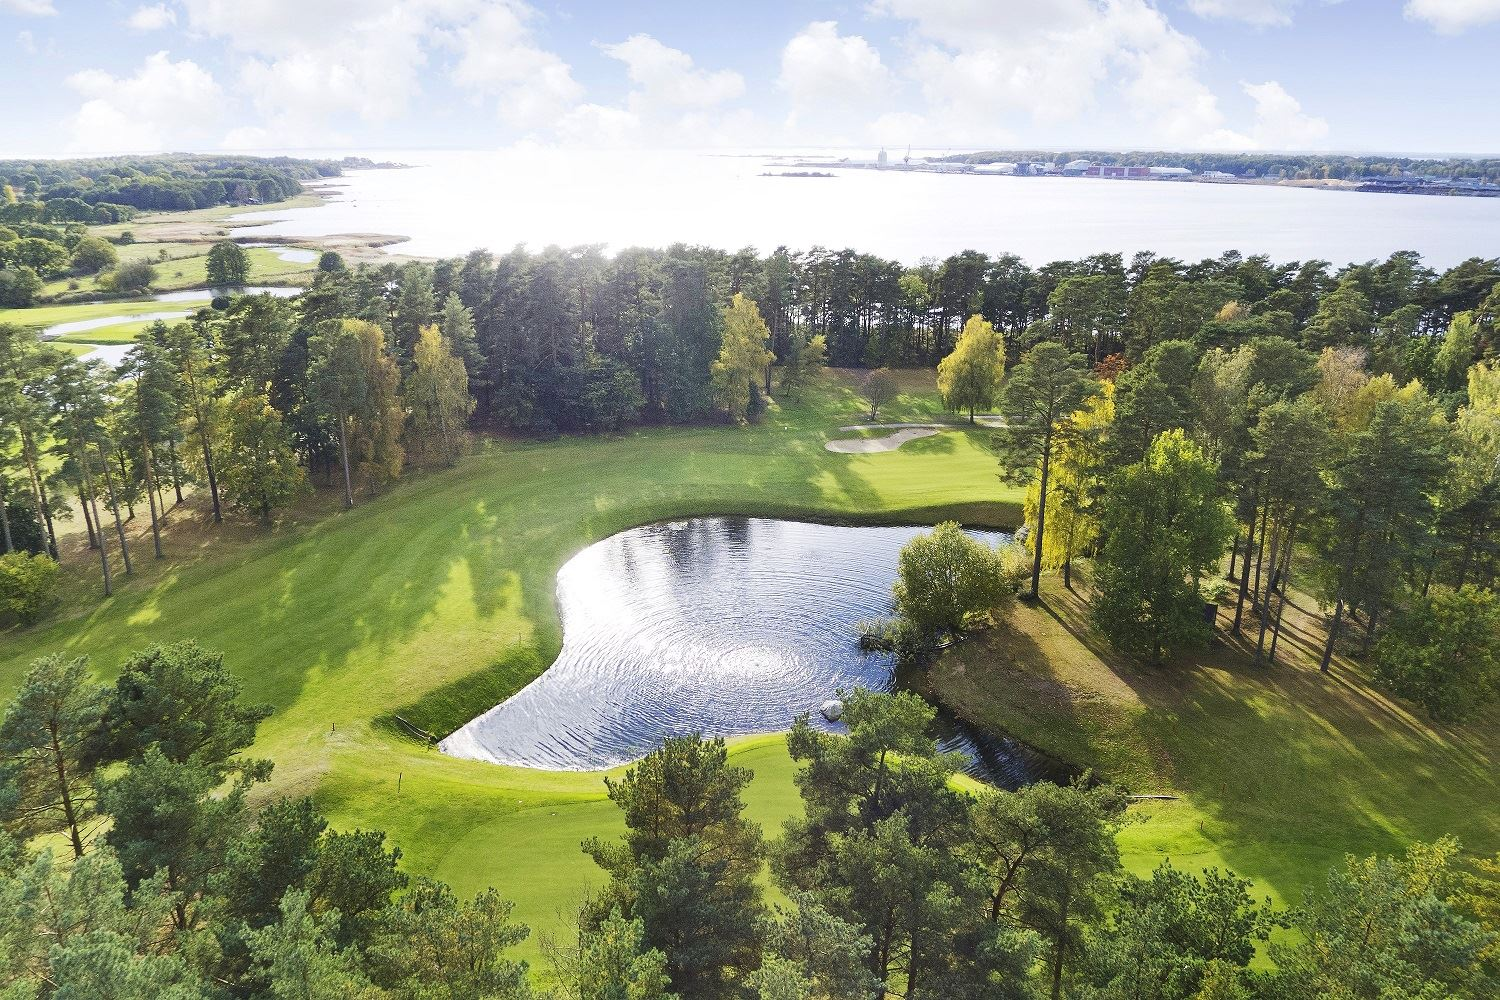 Play golf & stay att First Hotel, in the middle of a World Heritage